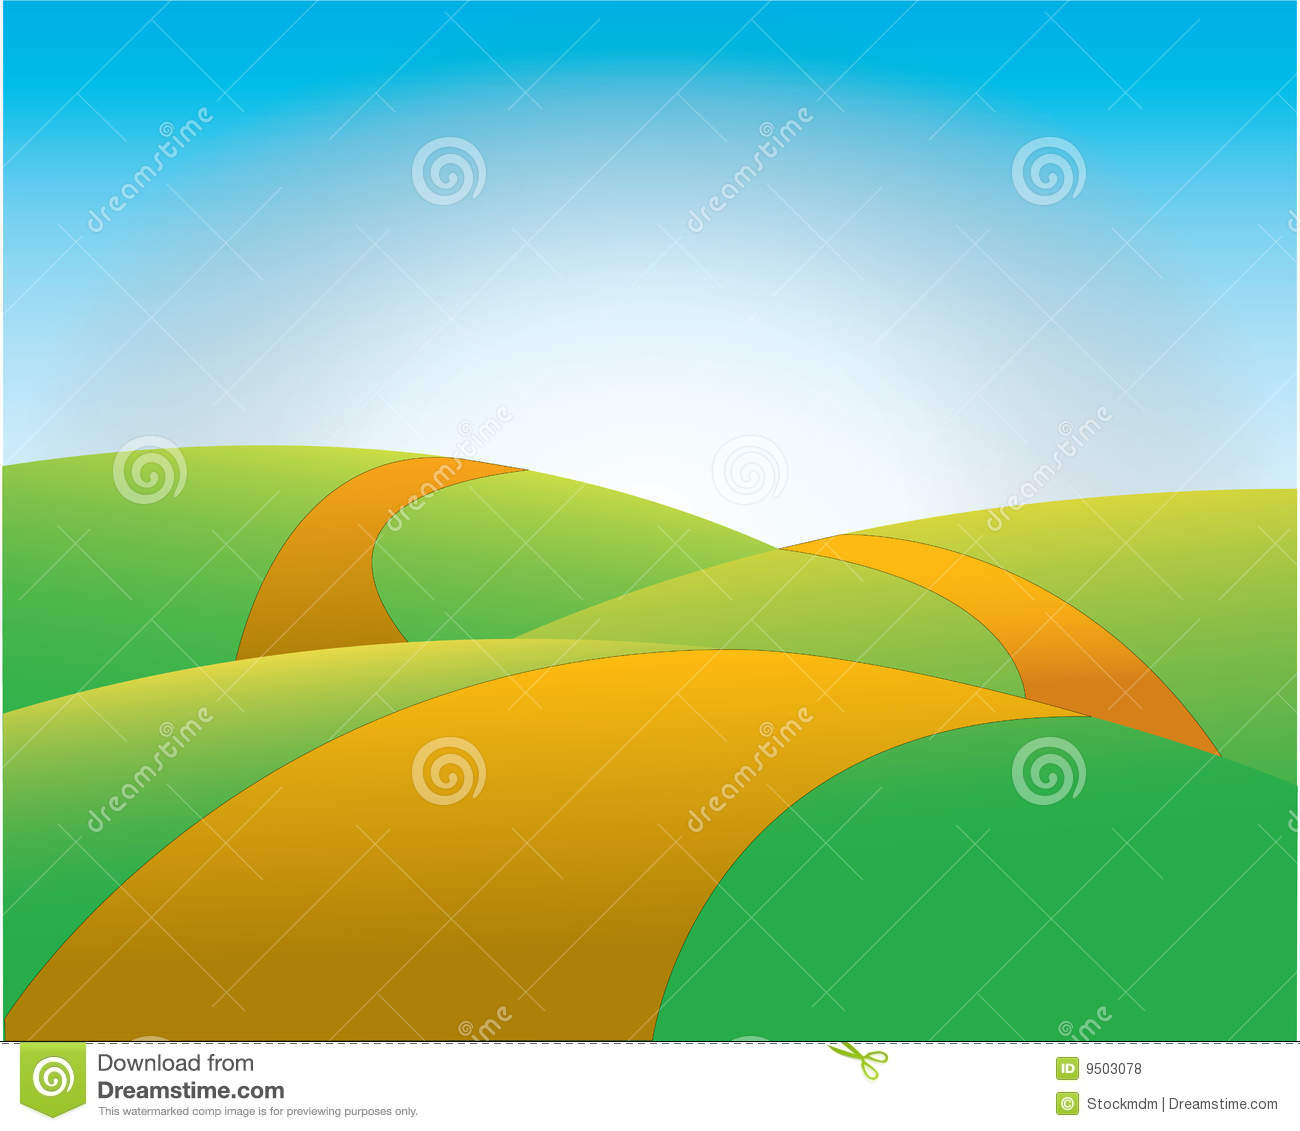 Pathway clipart background Hill road clipart hill Clipground